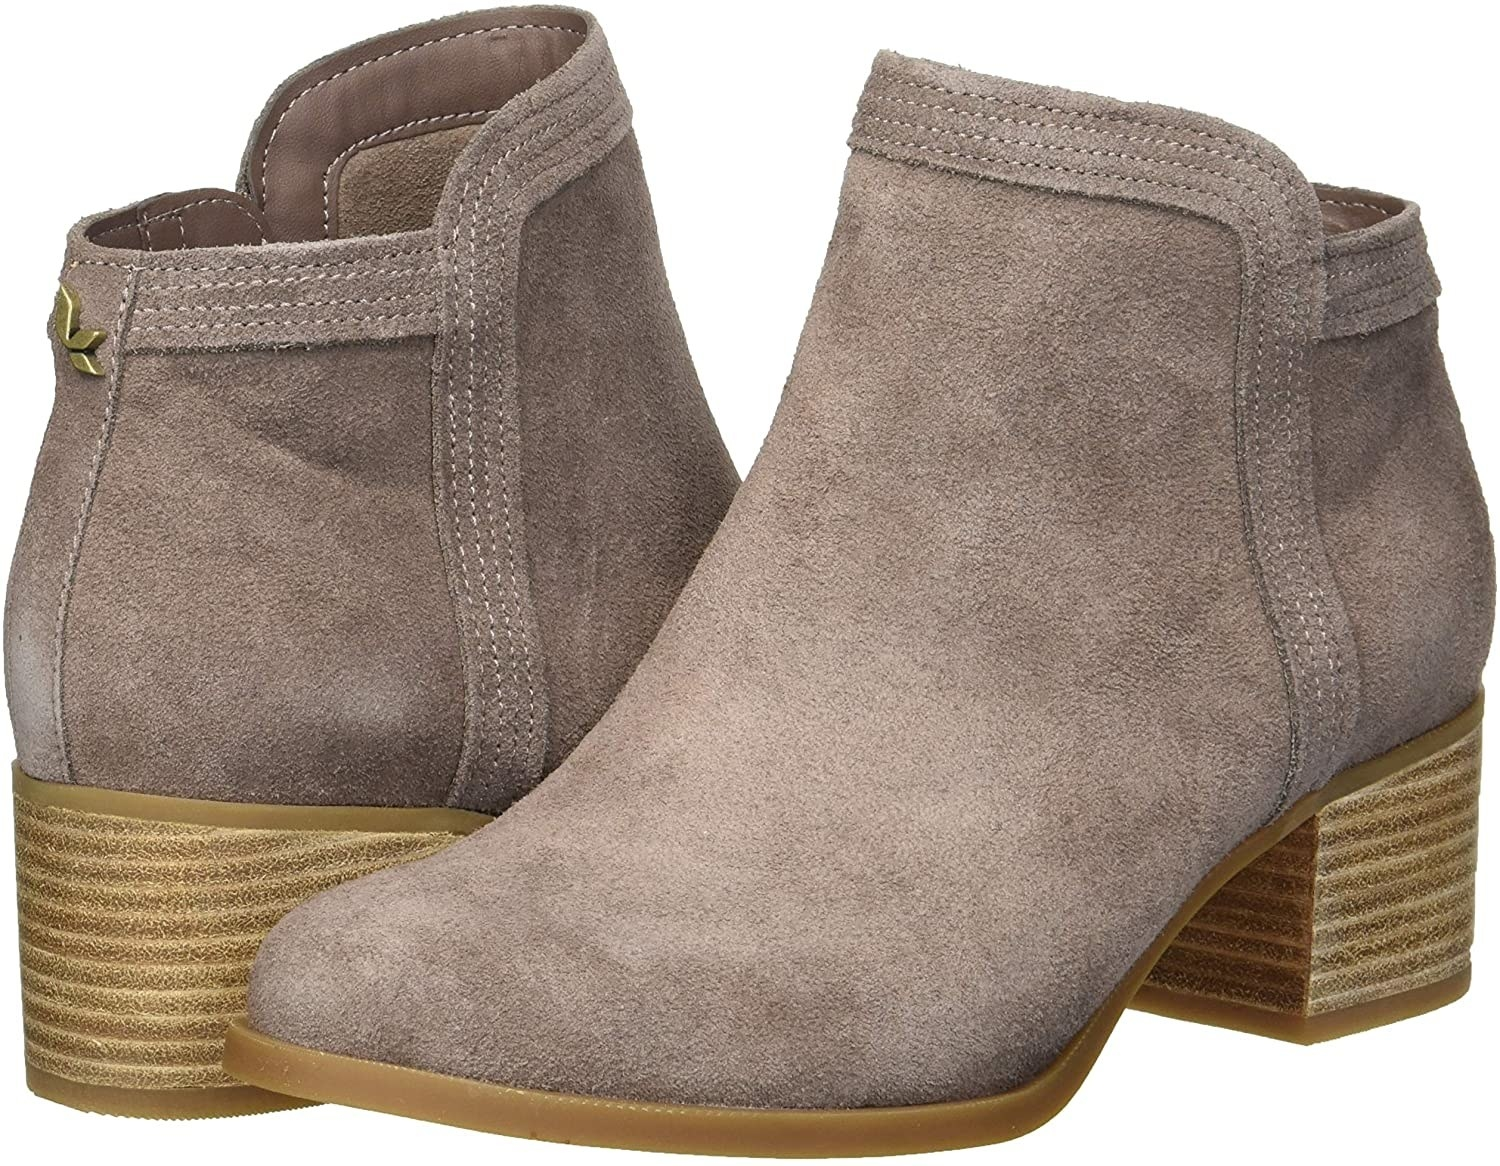 a pair of suede boots